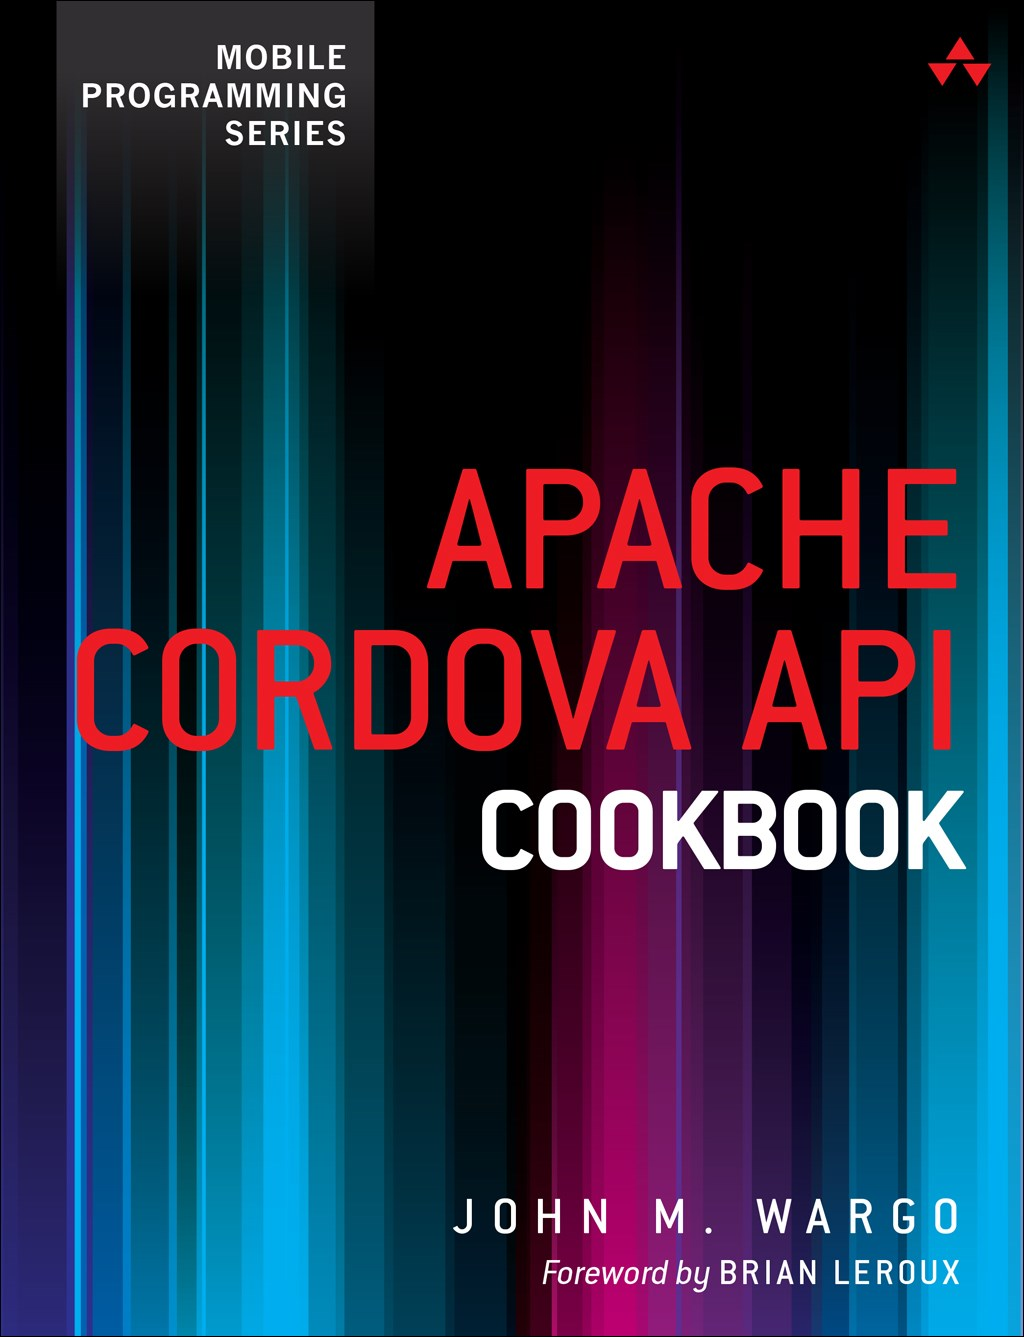 Apache Cordova API Cookbook